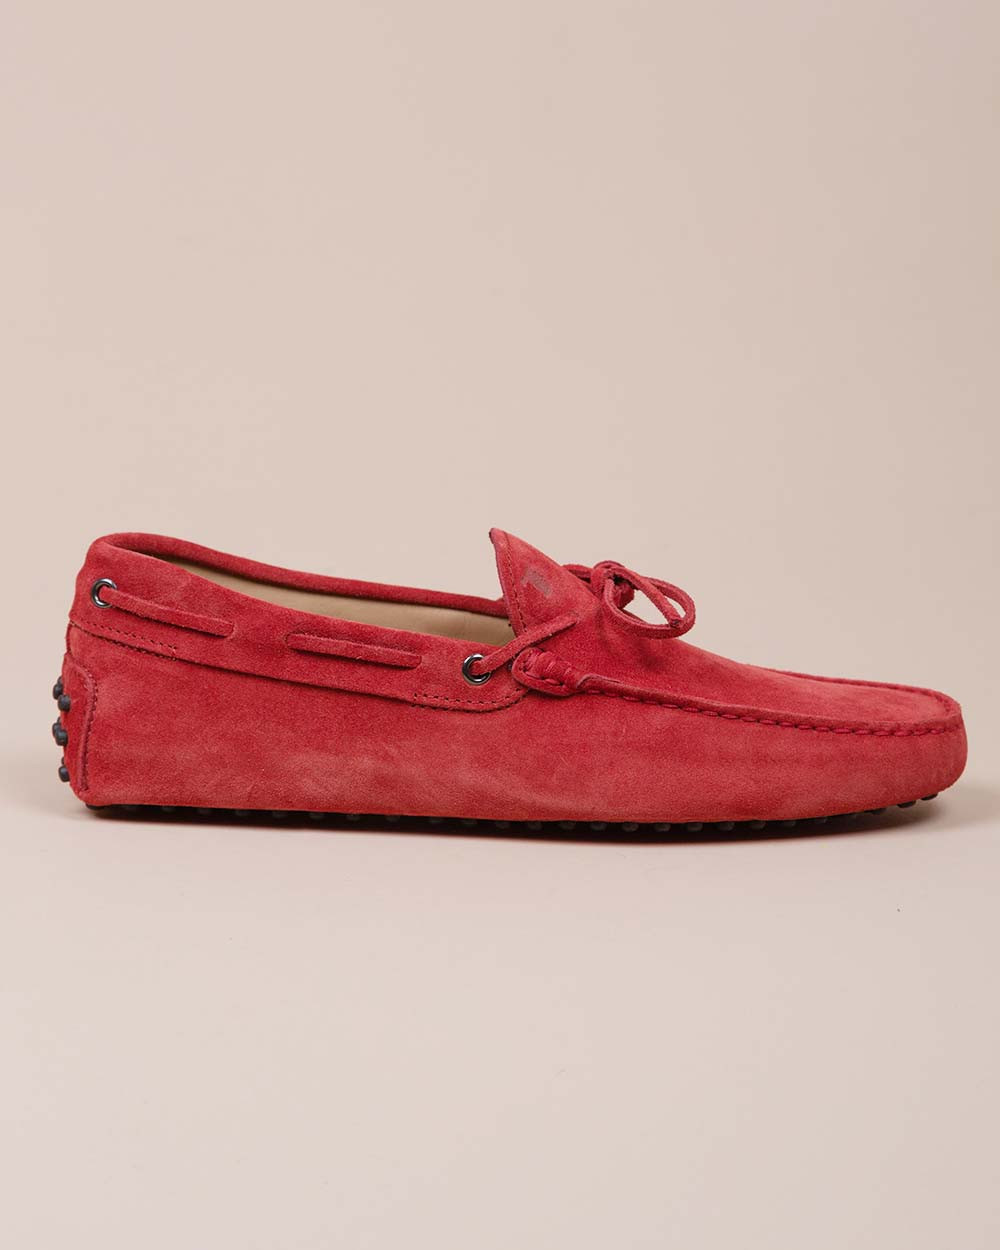 Gomini Lacetto - Split leather moccasins with rubber pins